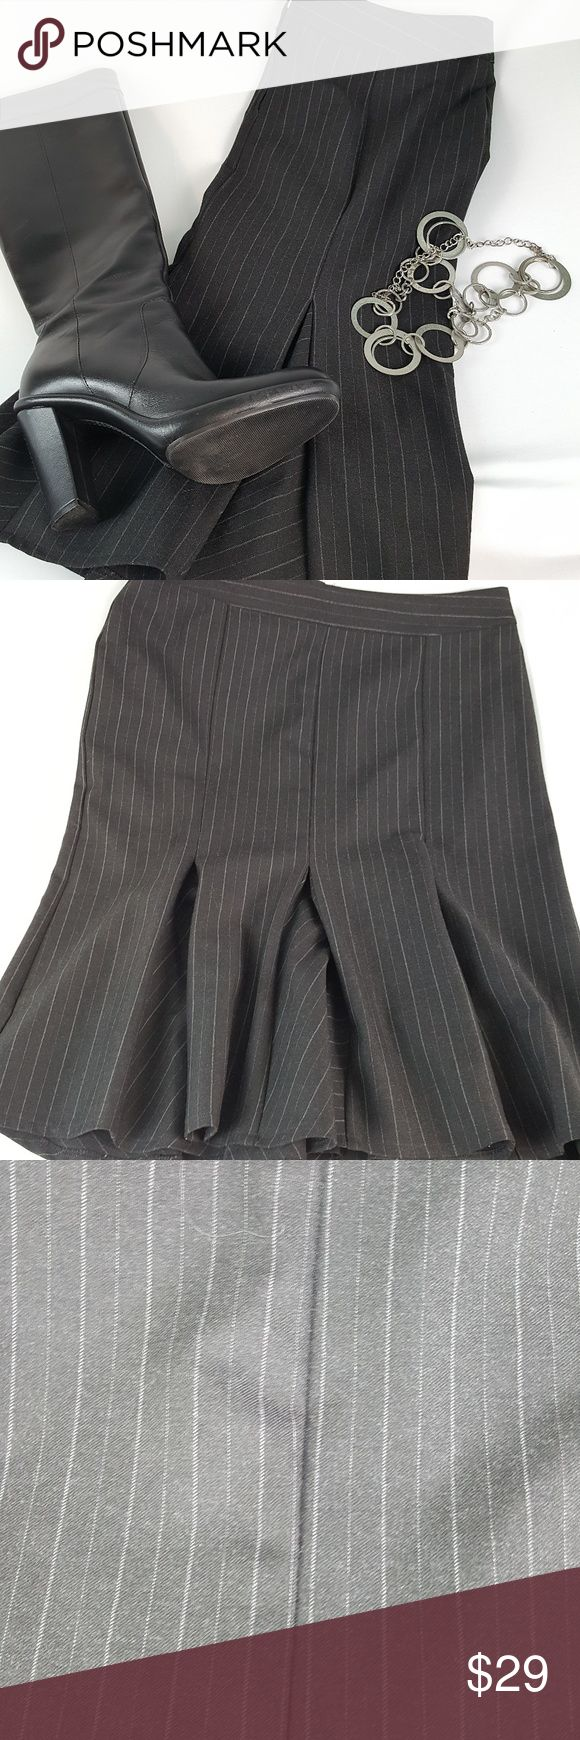 "United Colors of Benetton Pinstriped Gray Skirt Perfect for career wear wardrobe, this is a quality fit n' flare skirt with pleated bottom by Benetton. Light stretch for flexible fit. Size 6 (EUR 42).   Waist: 15.5"" Hips: 18"" Waist to Hem: 23"" * measurements are taken flat and are APPROXIMATE *  ALL ITEMS FROM A SMOKE-FREE HOME   #M15 GWB-100 United Colors Of Benetton Skirts"